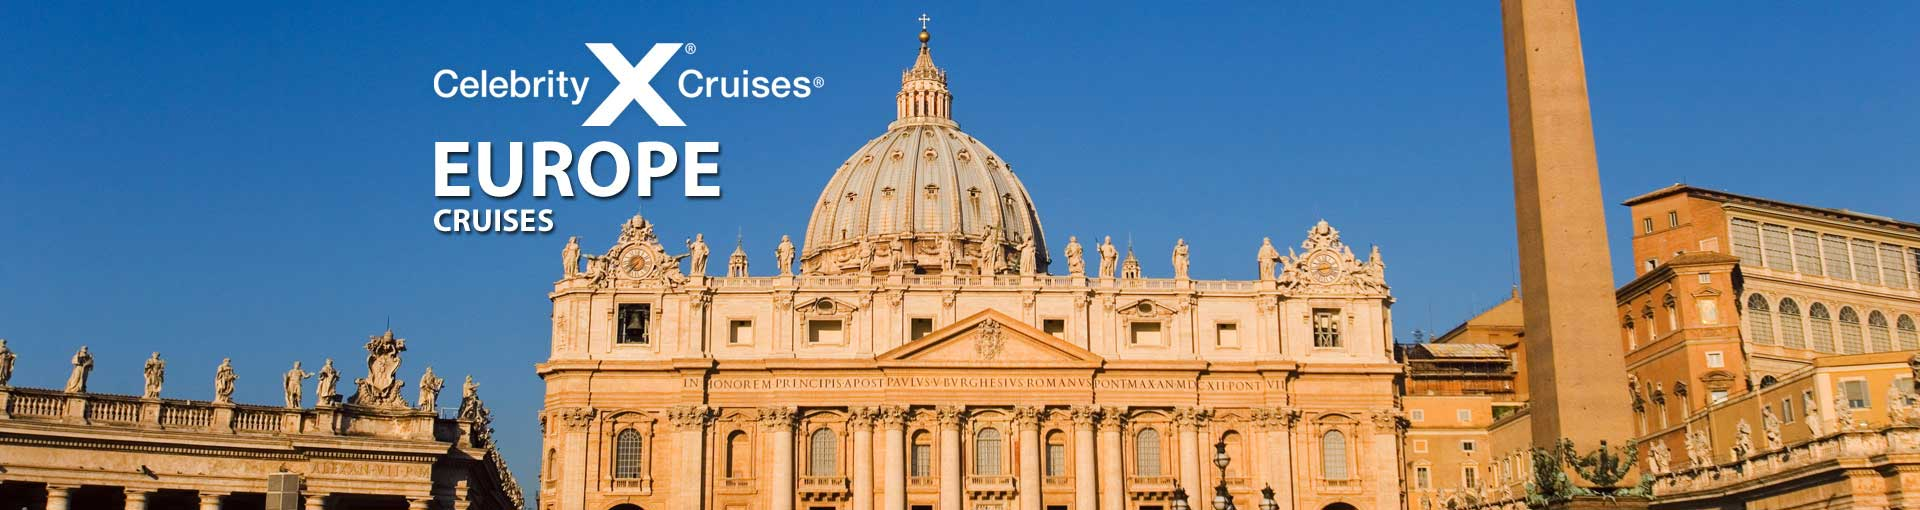 European Cruise Deals: Celebrity